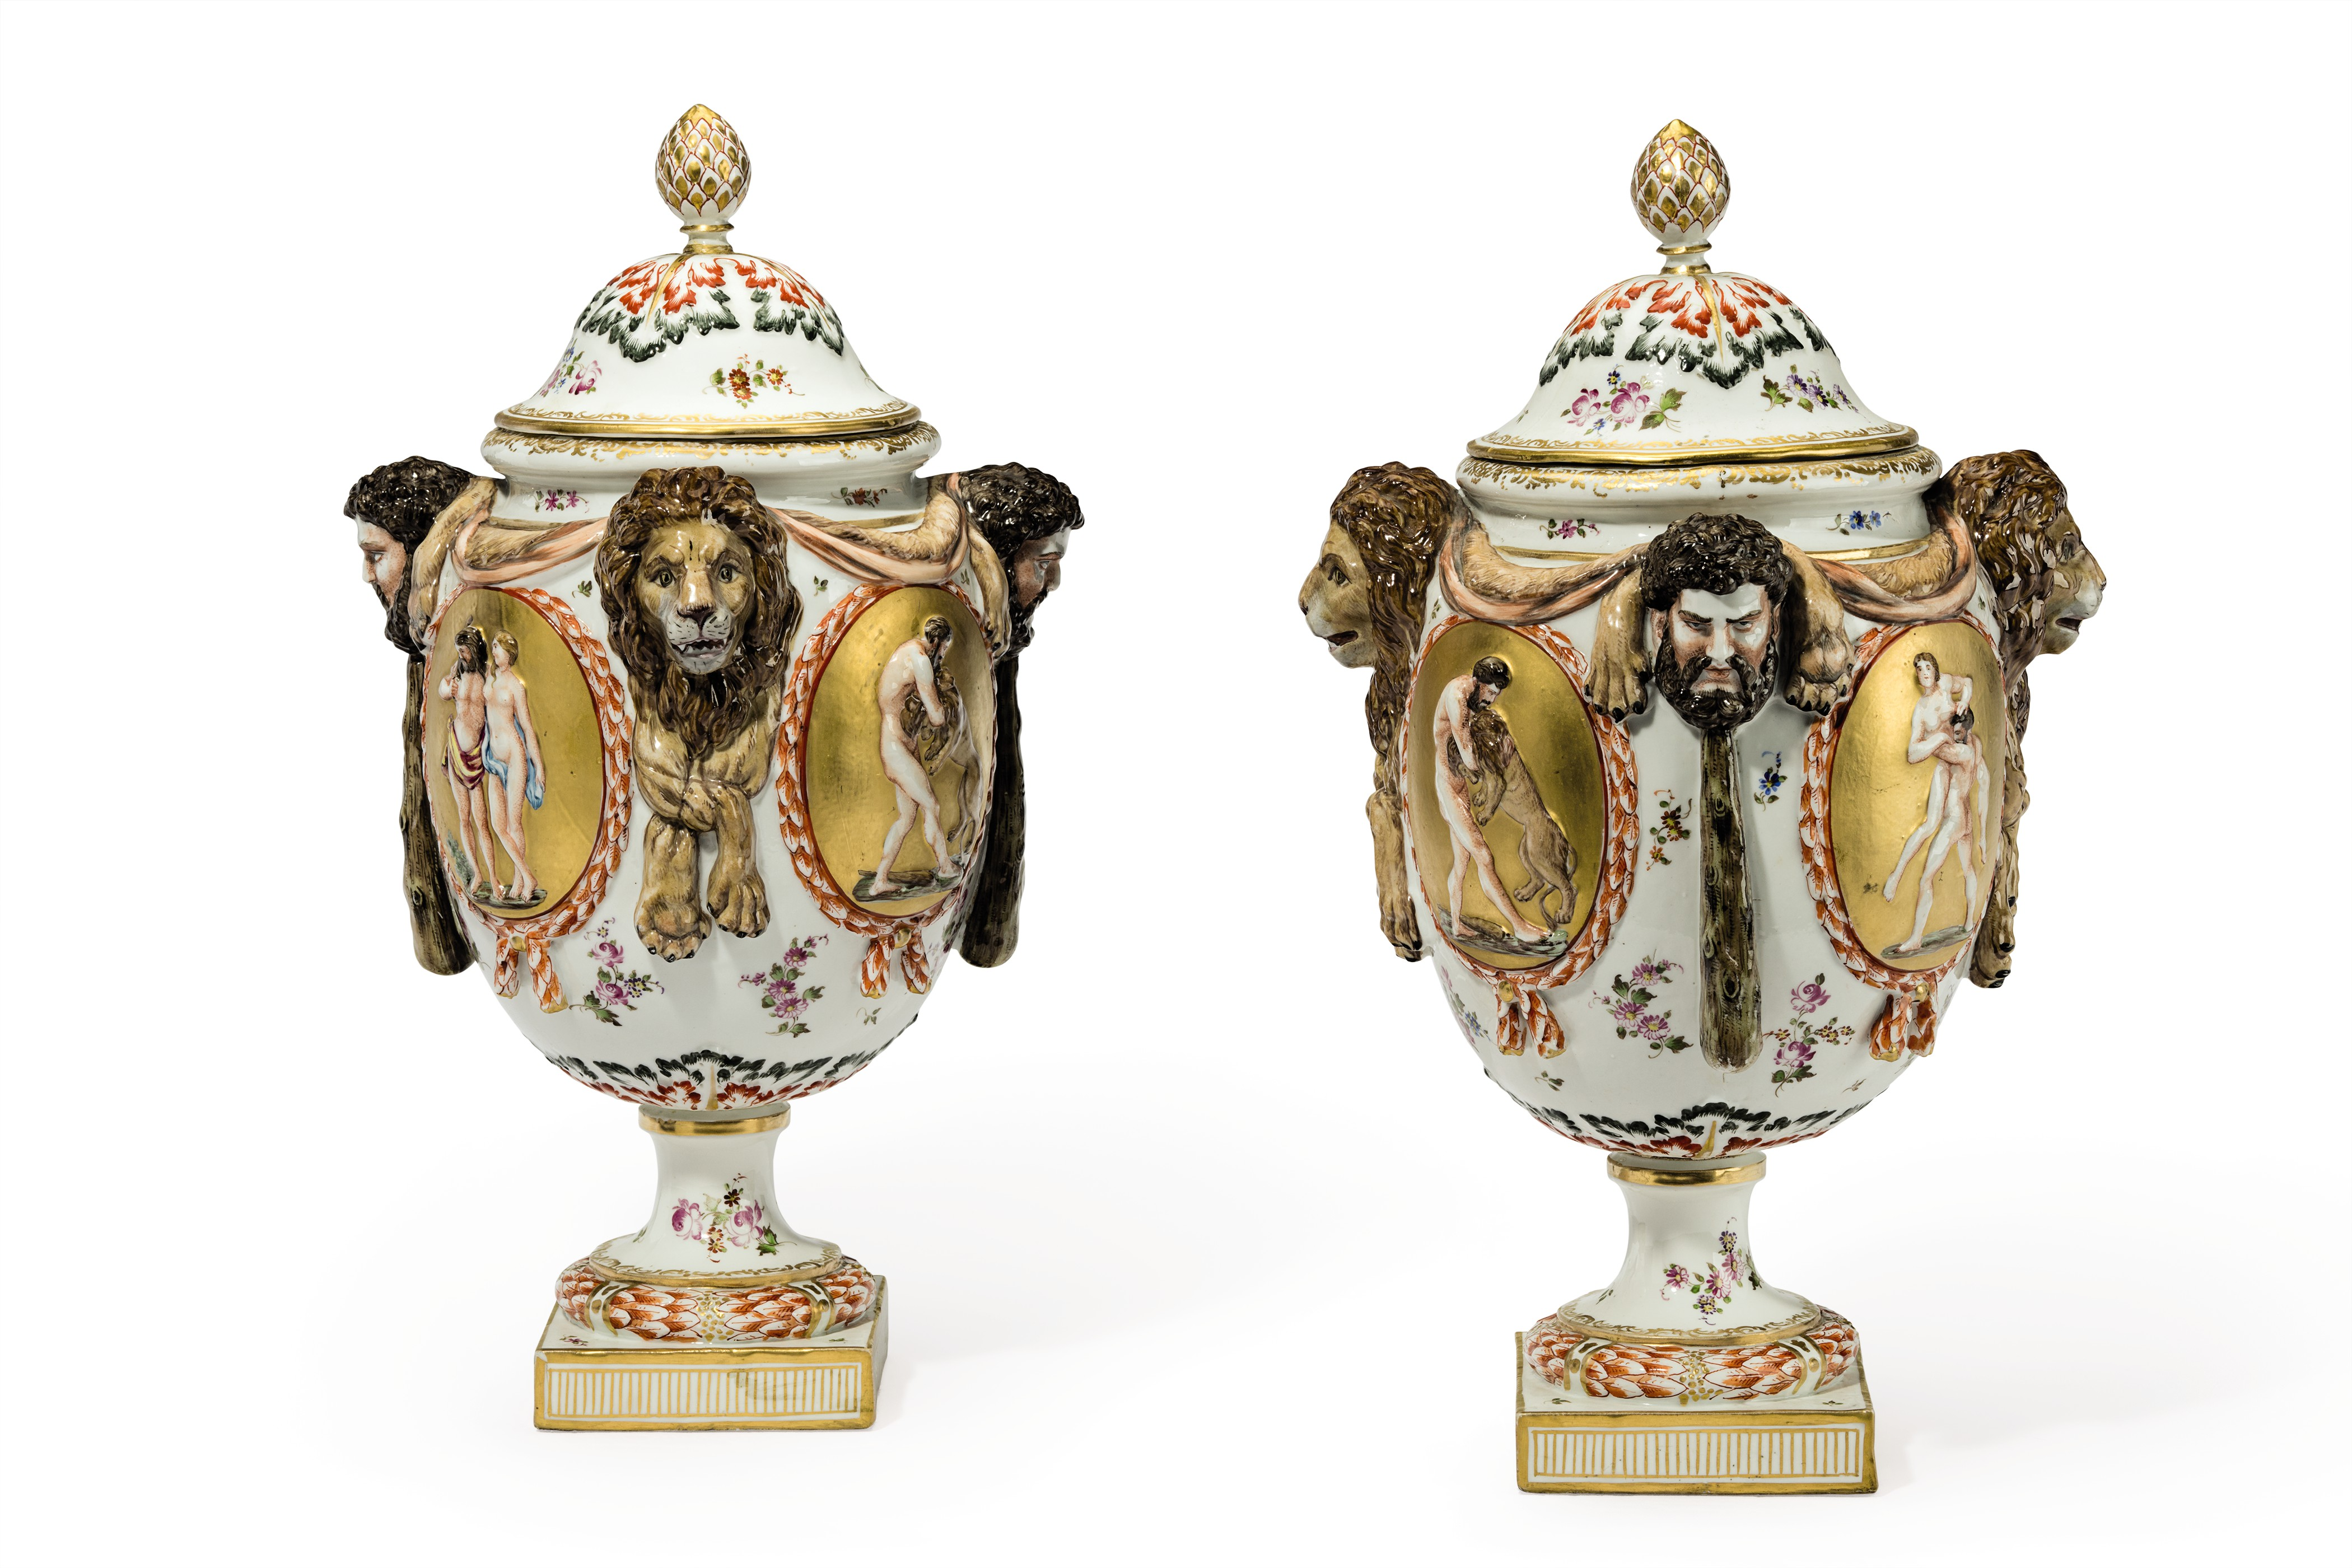 A PAIR OF CAPODIMONTE STYLE PORCELAIN VASES AND COVERS